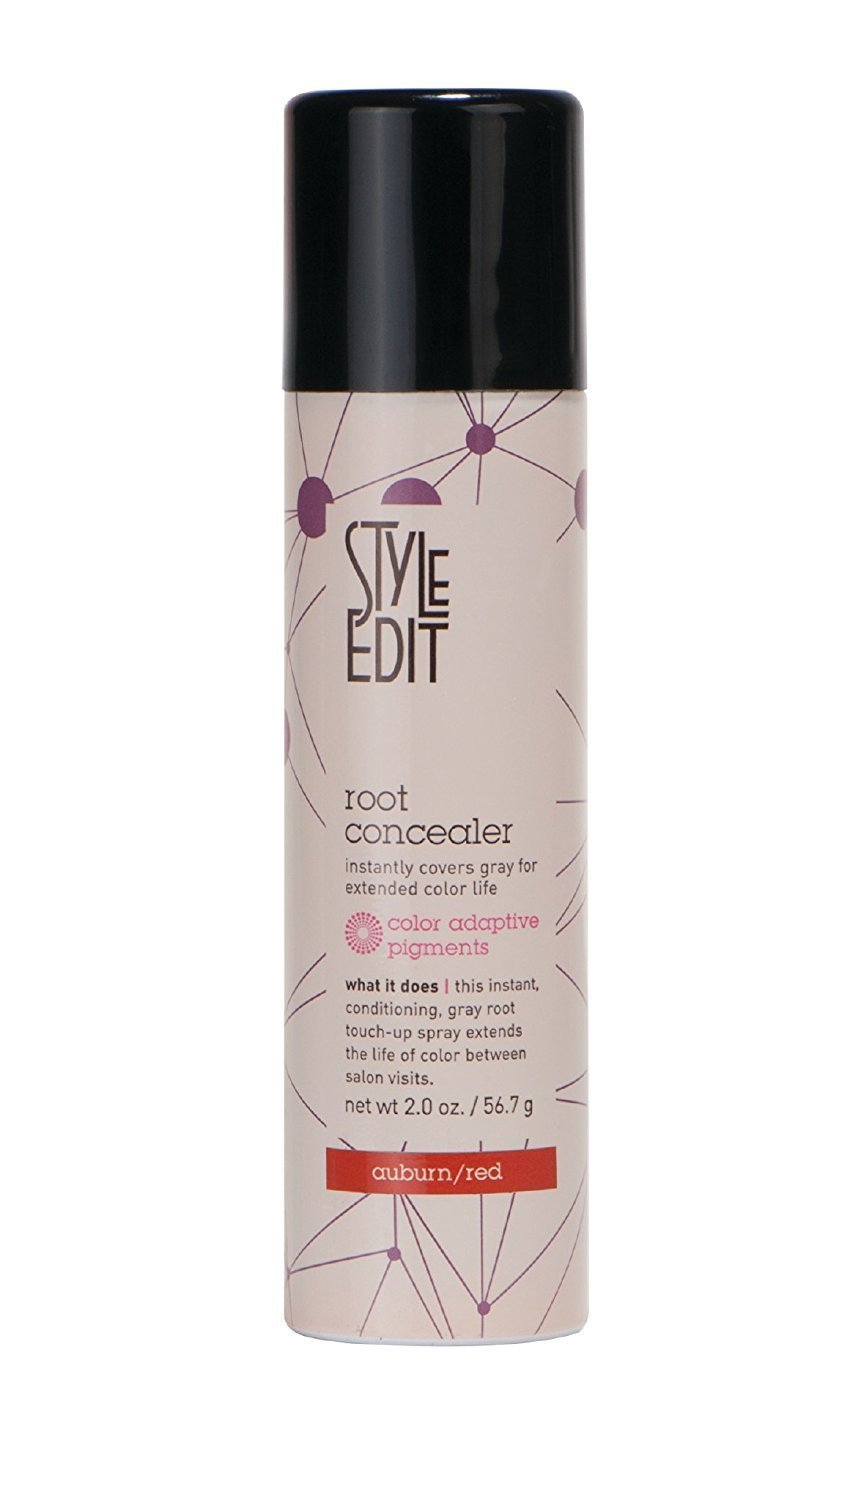 New! Style Edit Conceal Spray 2 Oz. Auburn/red (Conceal Your Gray Between Color Services stylered